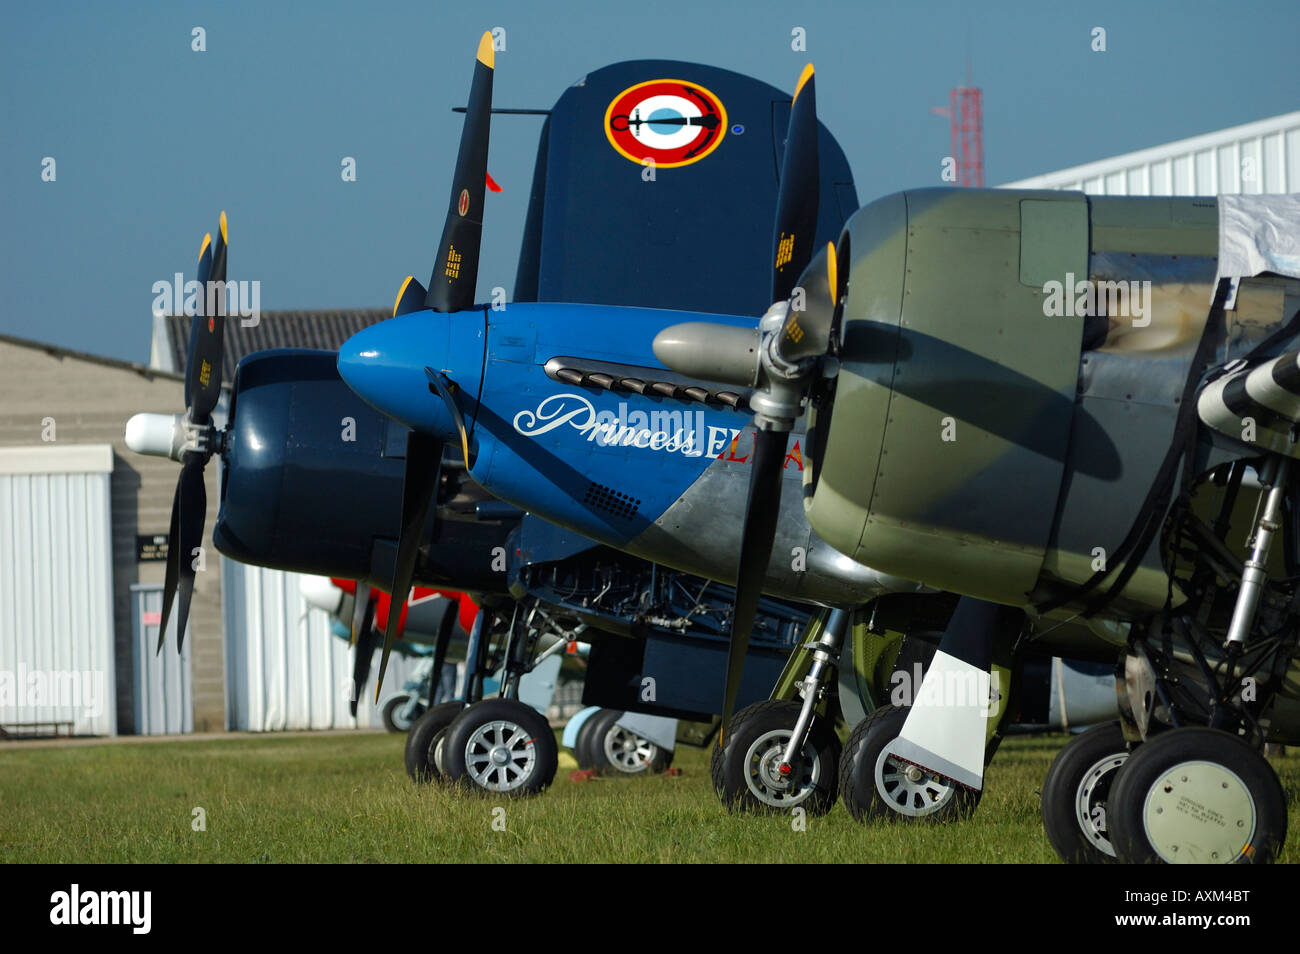 Alignment noses of wwII propellers fighters planes, french vintage air show, La Ferte Alais, France - Stock Image